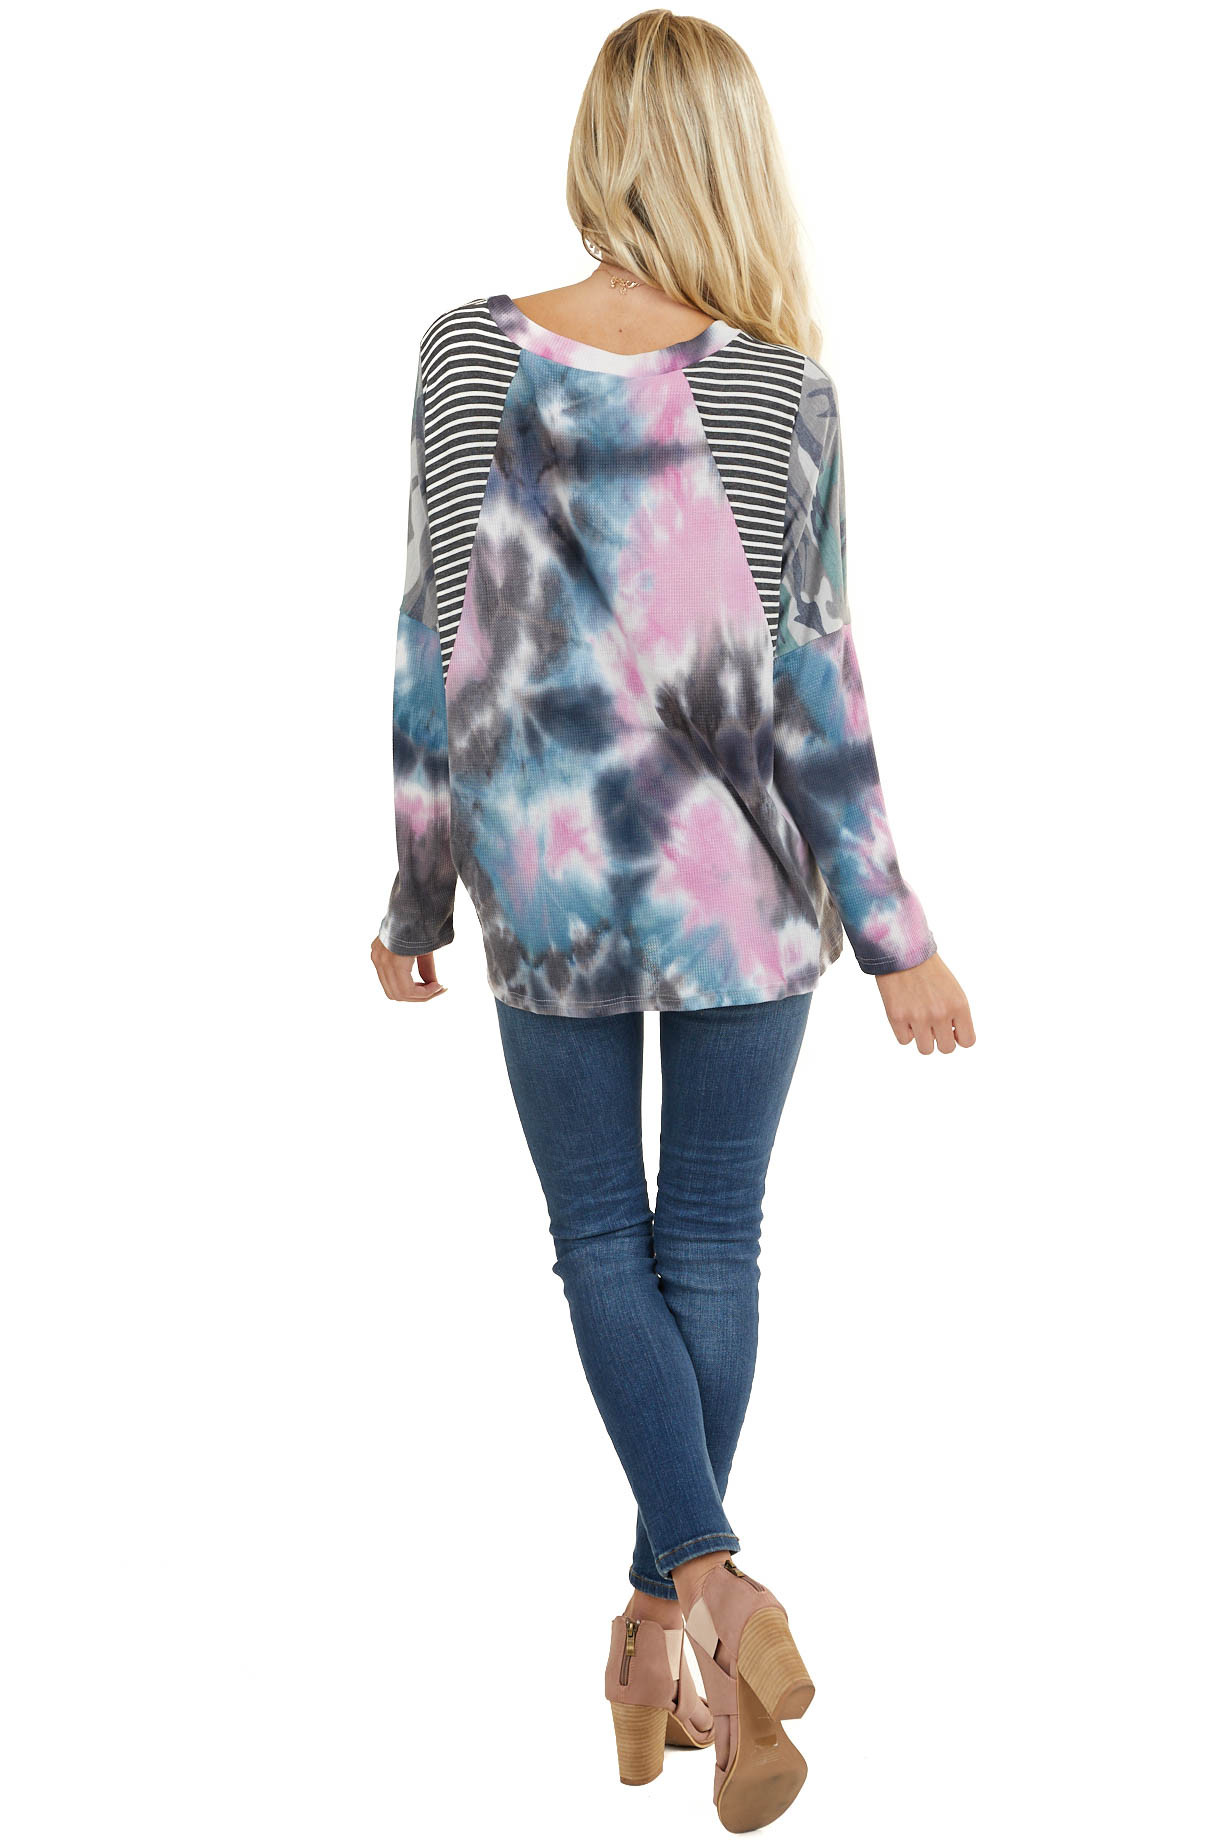 Charcoal Multicolor Tie Dye Top with Multiprint Contrast